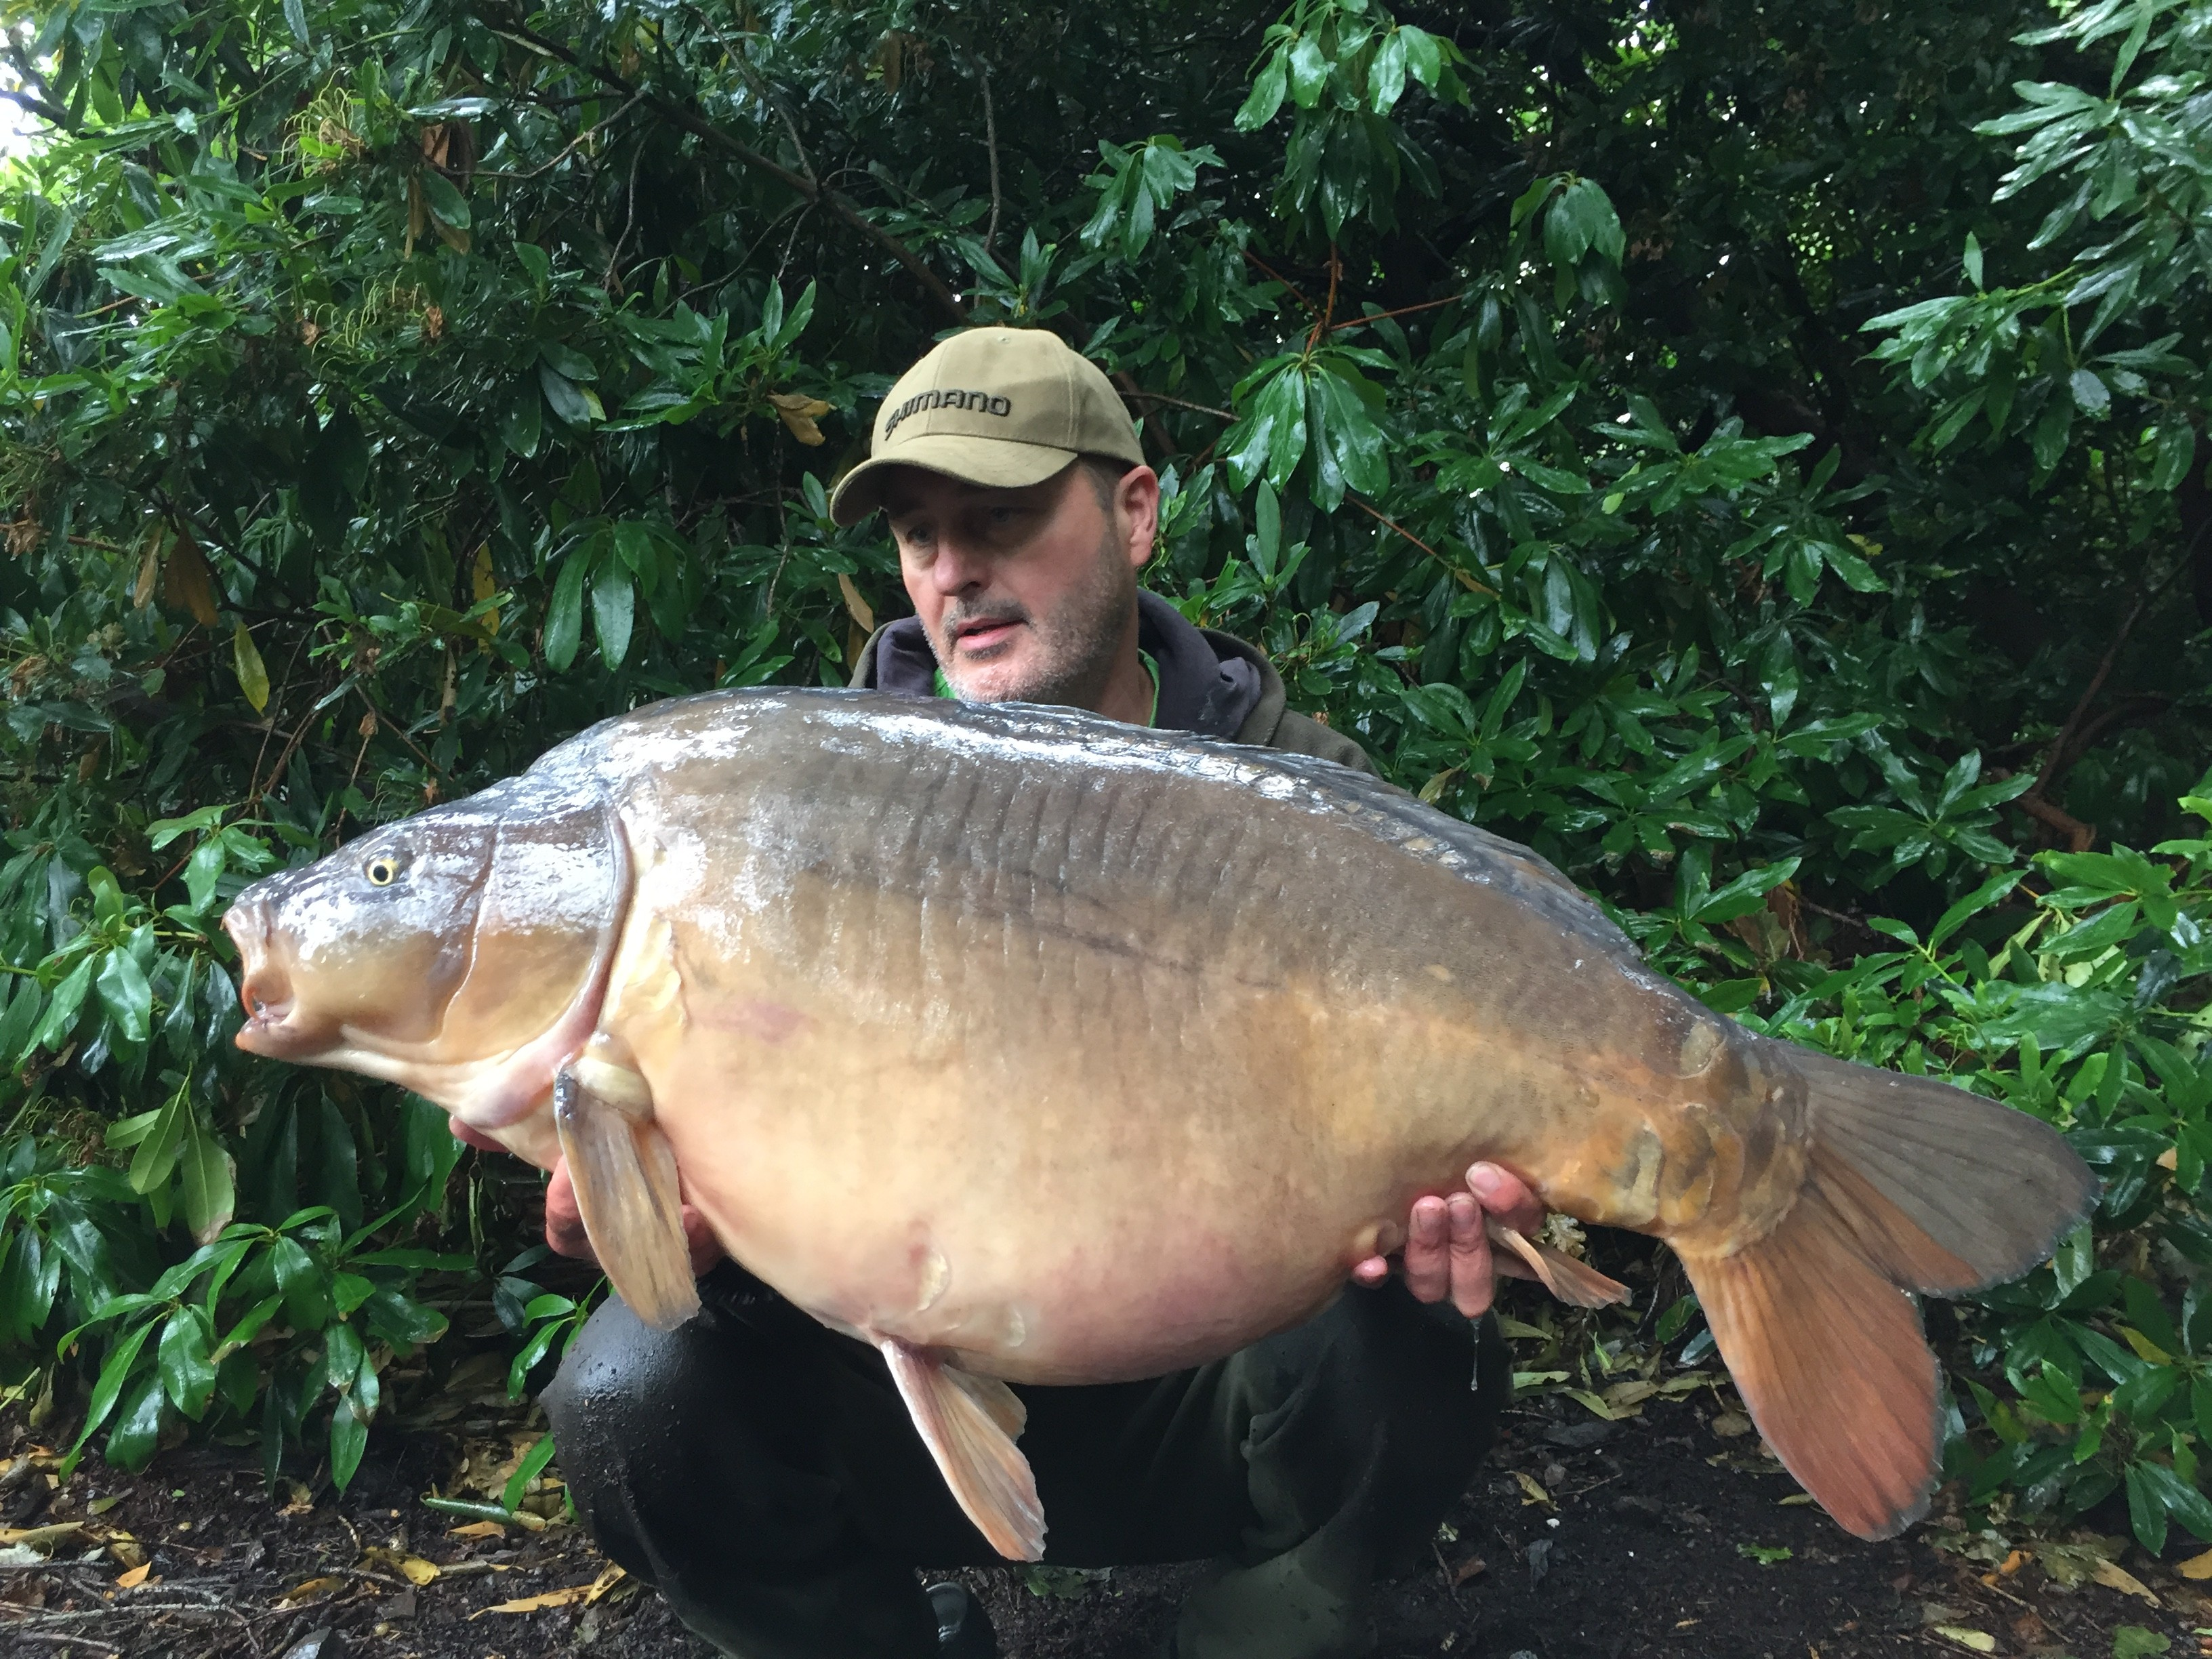 48lb 08oz 'The Big Girl' caught on